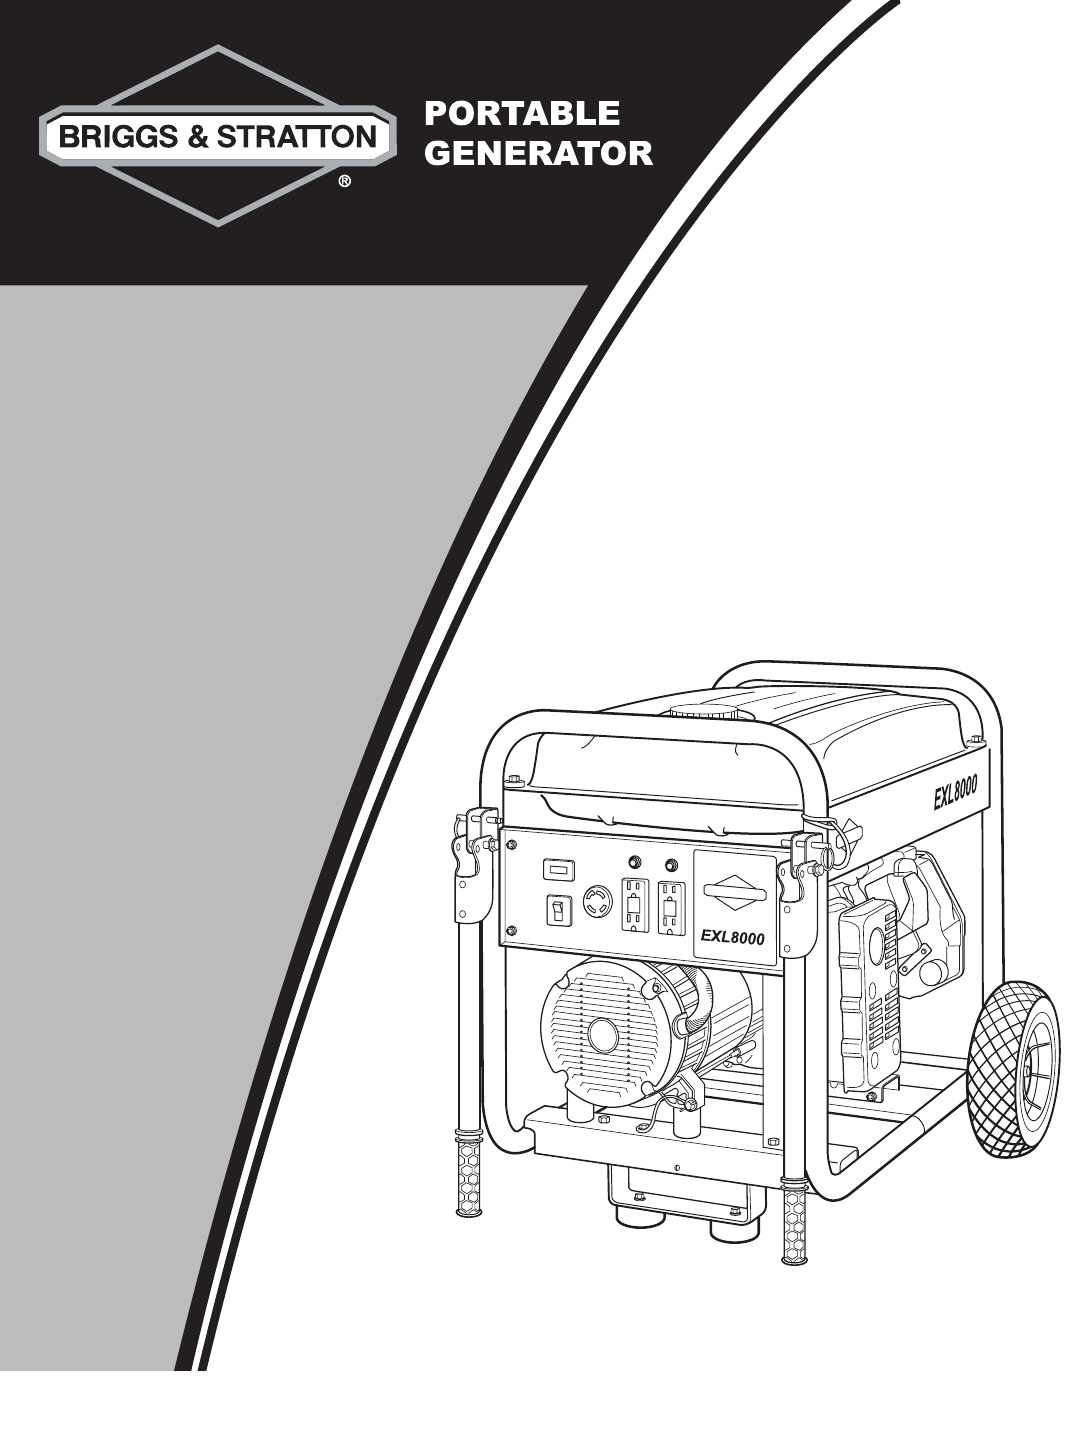 Briggs stratton portable generator 30244 user guide questions help is just a moment away swarovskicordoba Images